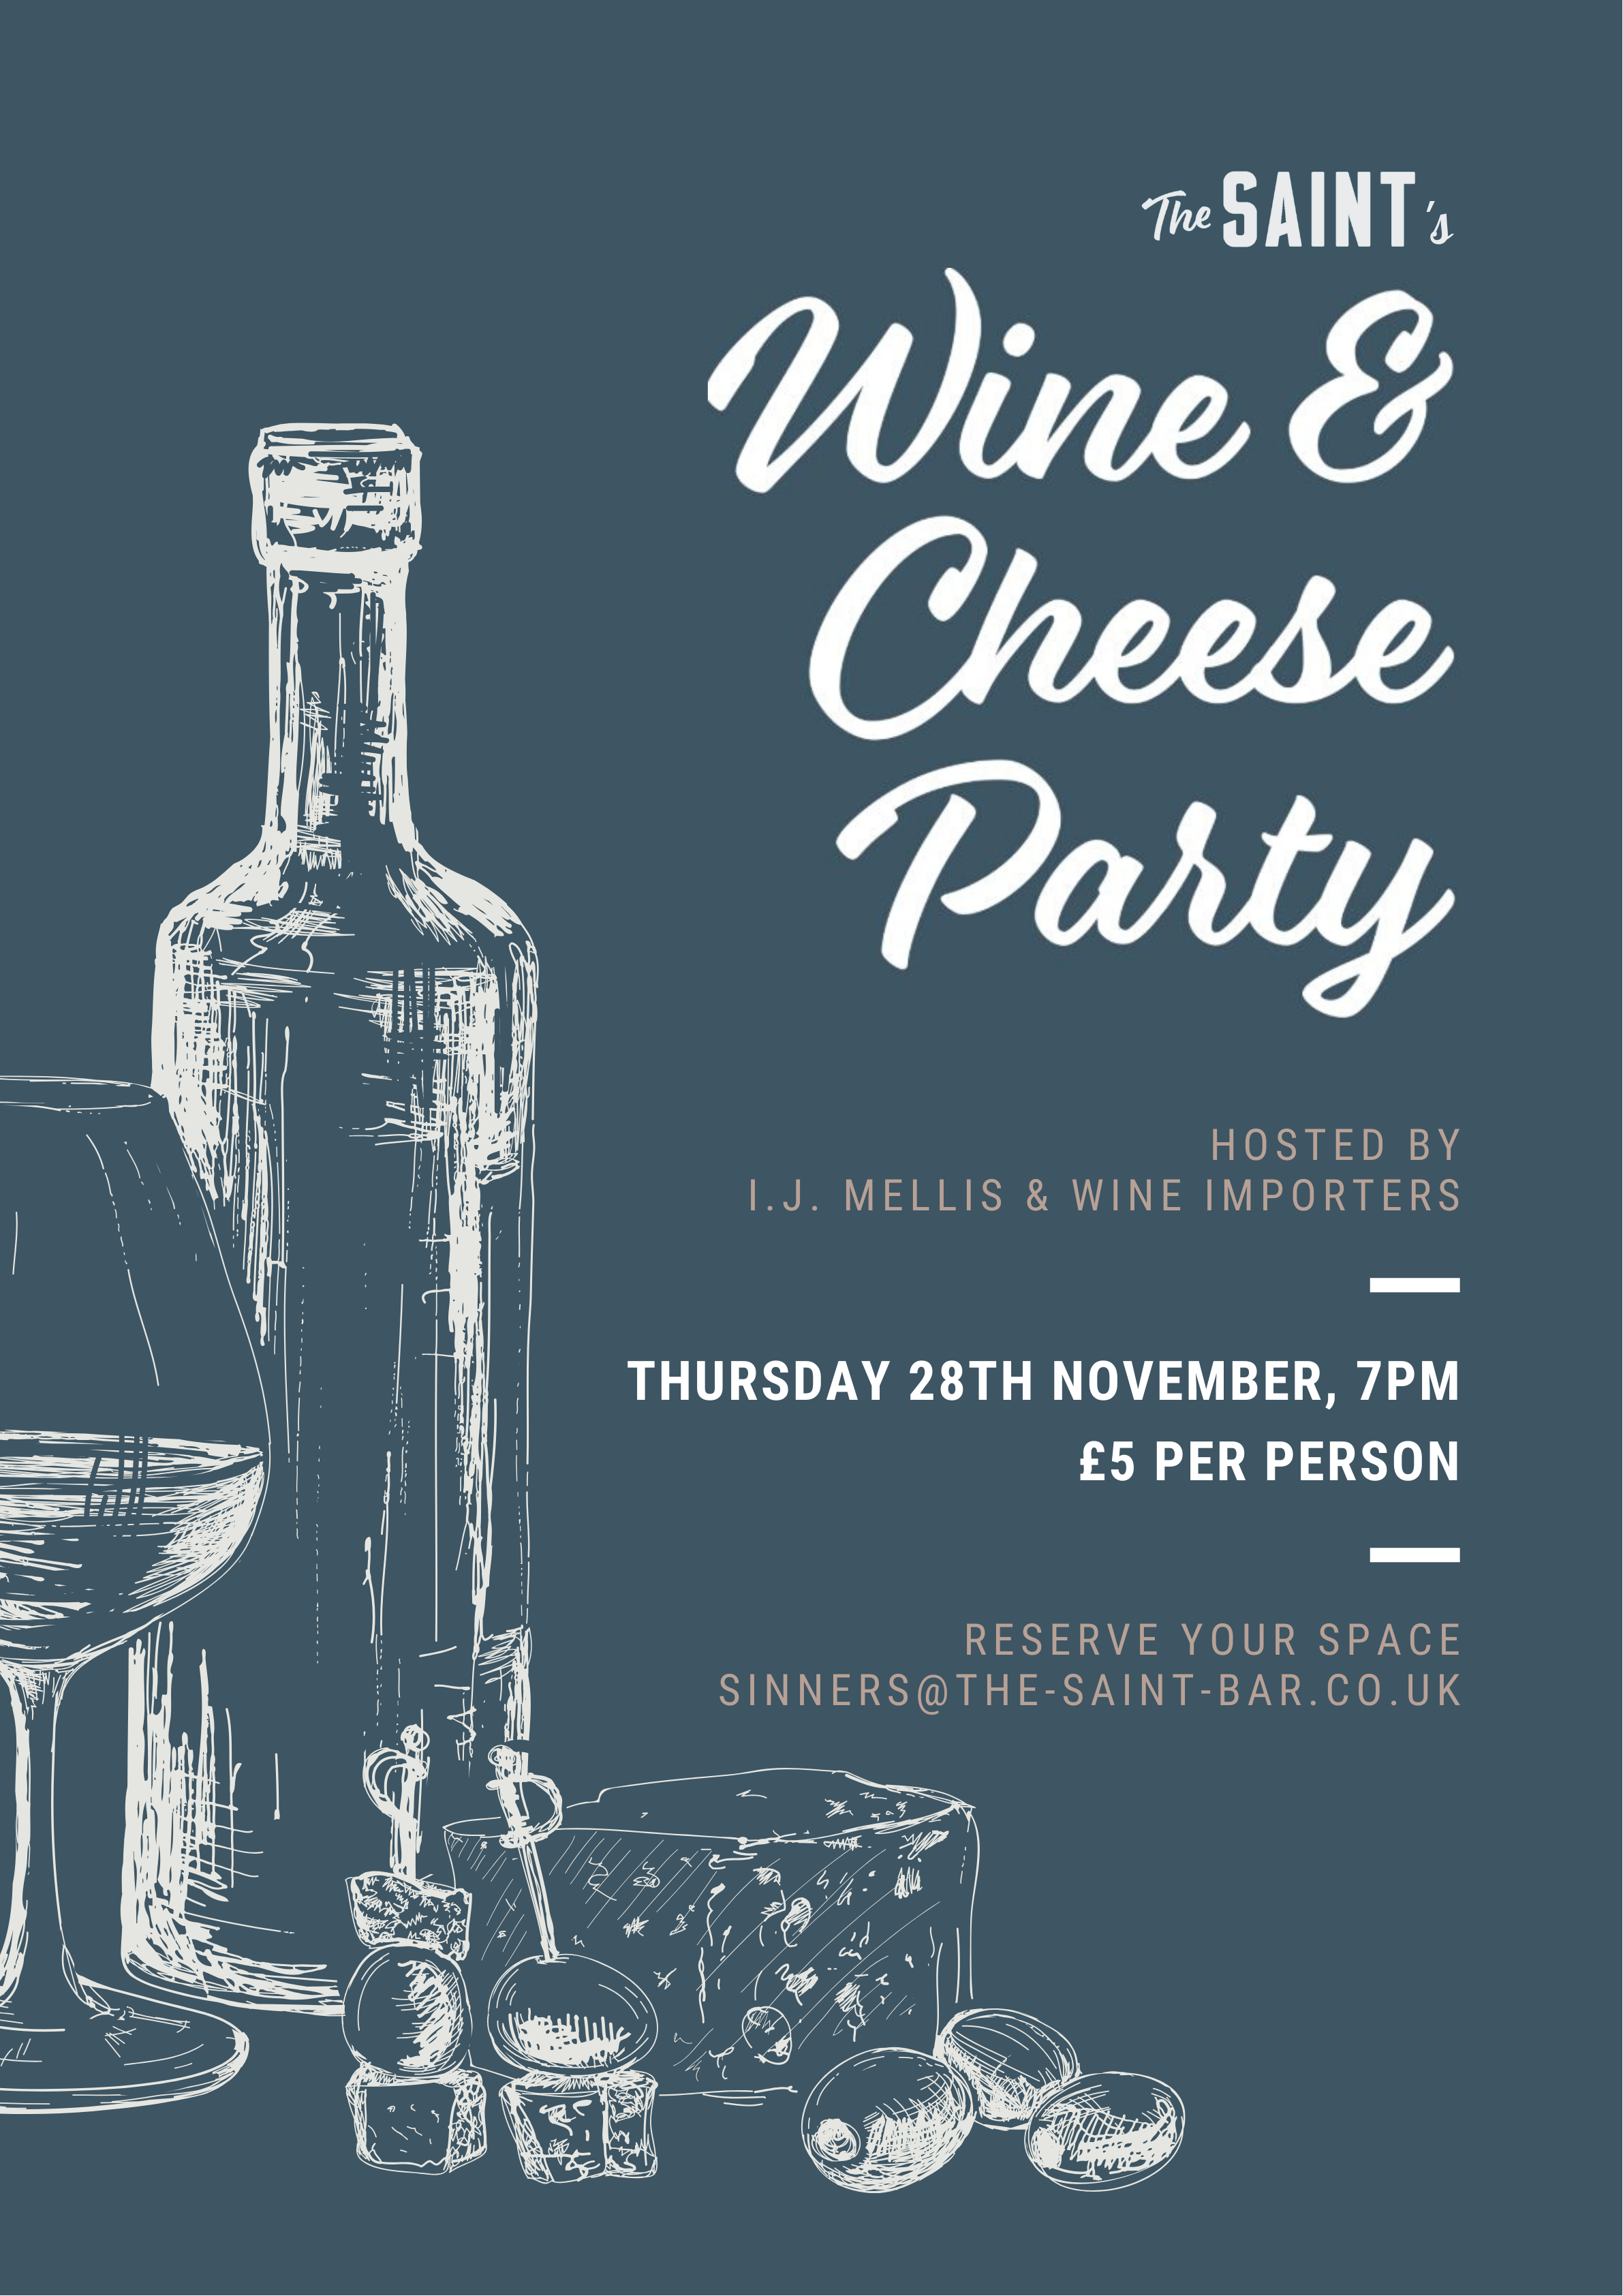 Wine & Cheese Party on 28th November at 7pm